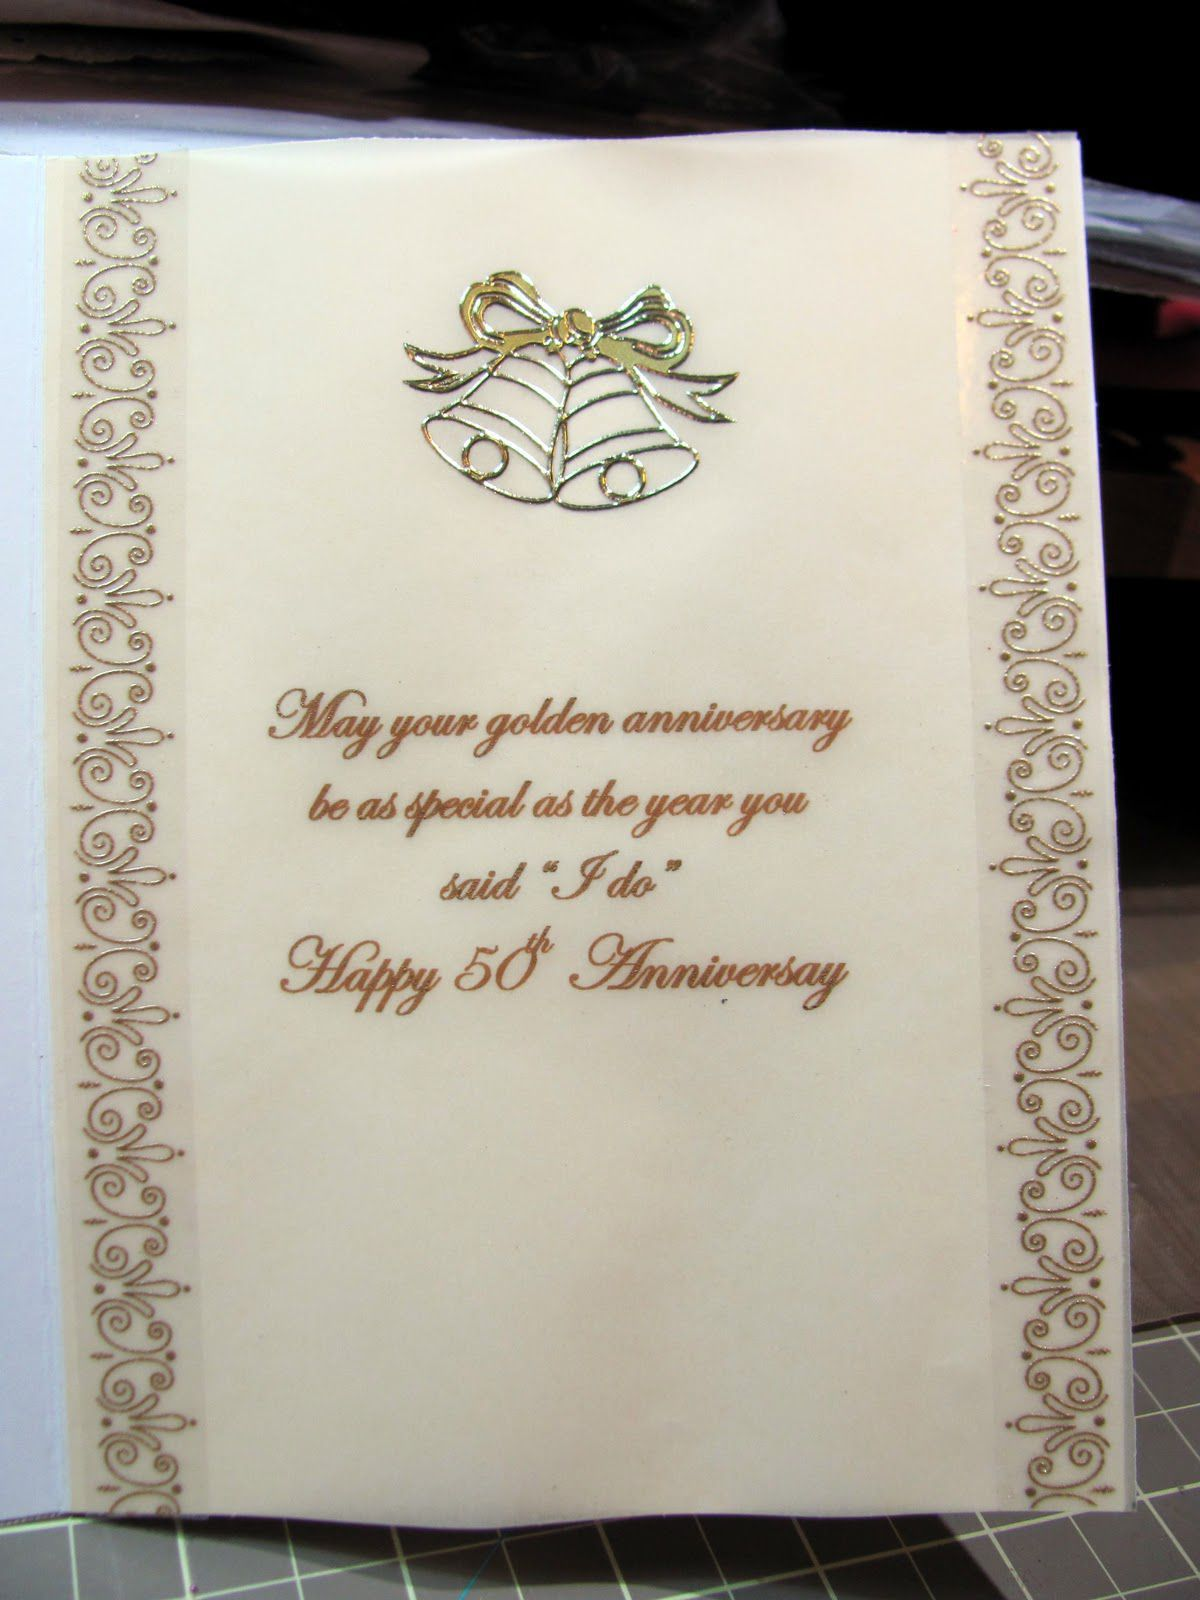 000 Awful 50th Anniversary Invitation Wording Sample Concept  Samples Wedding CardFull